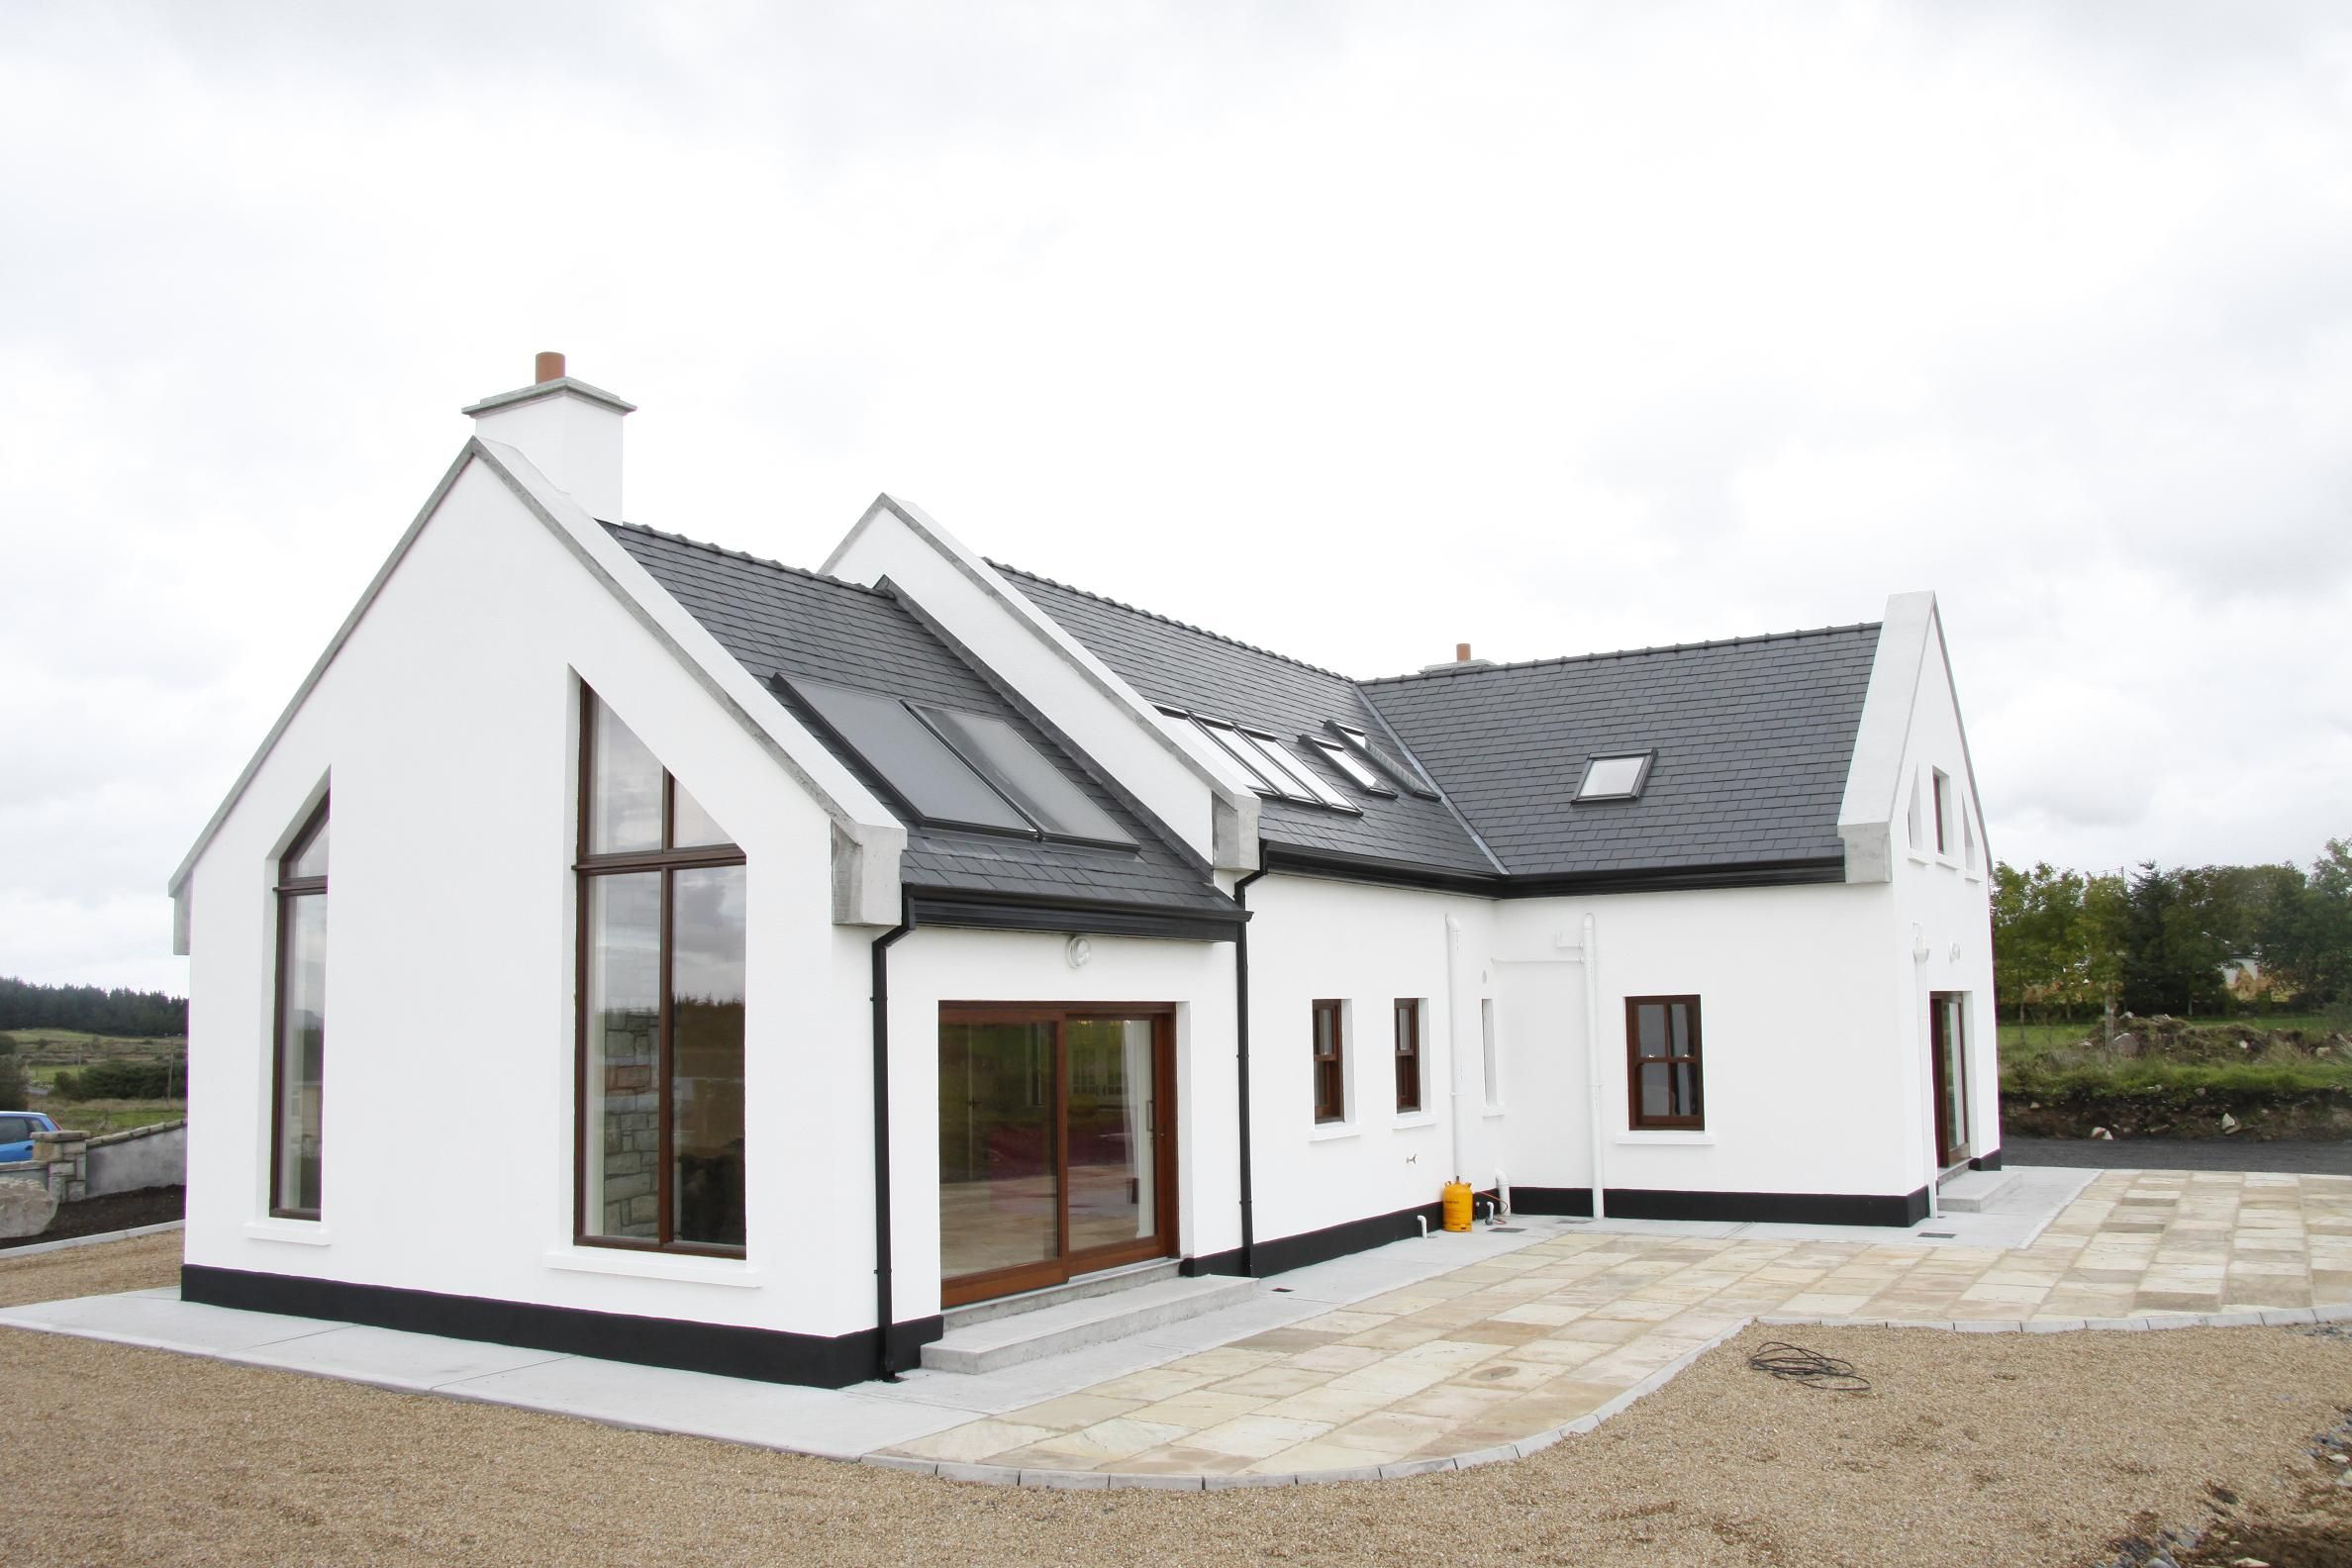 Exterior bungalow house ireland google search irish for Bungalow designs ireland